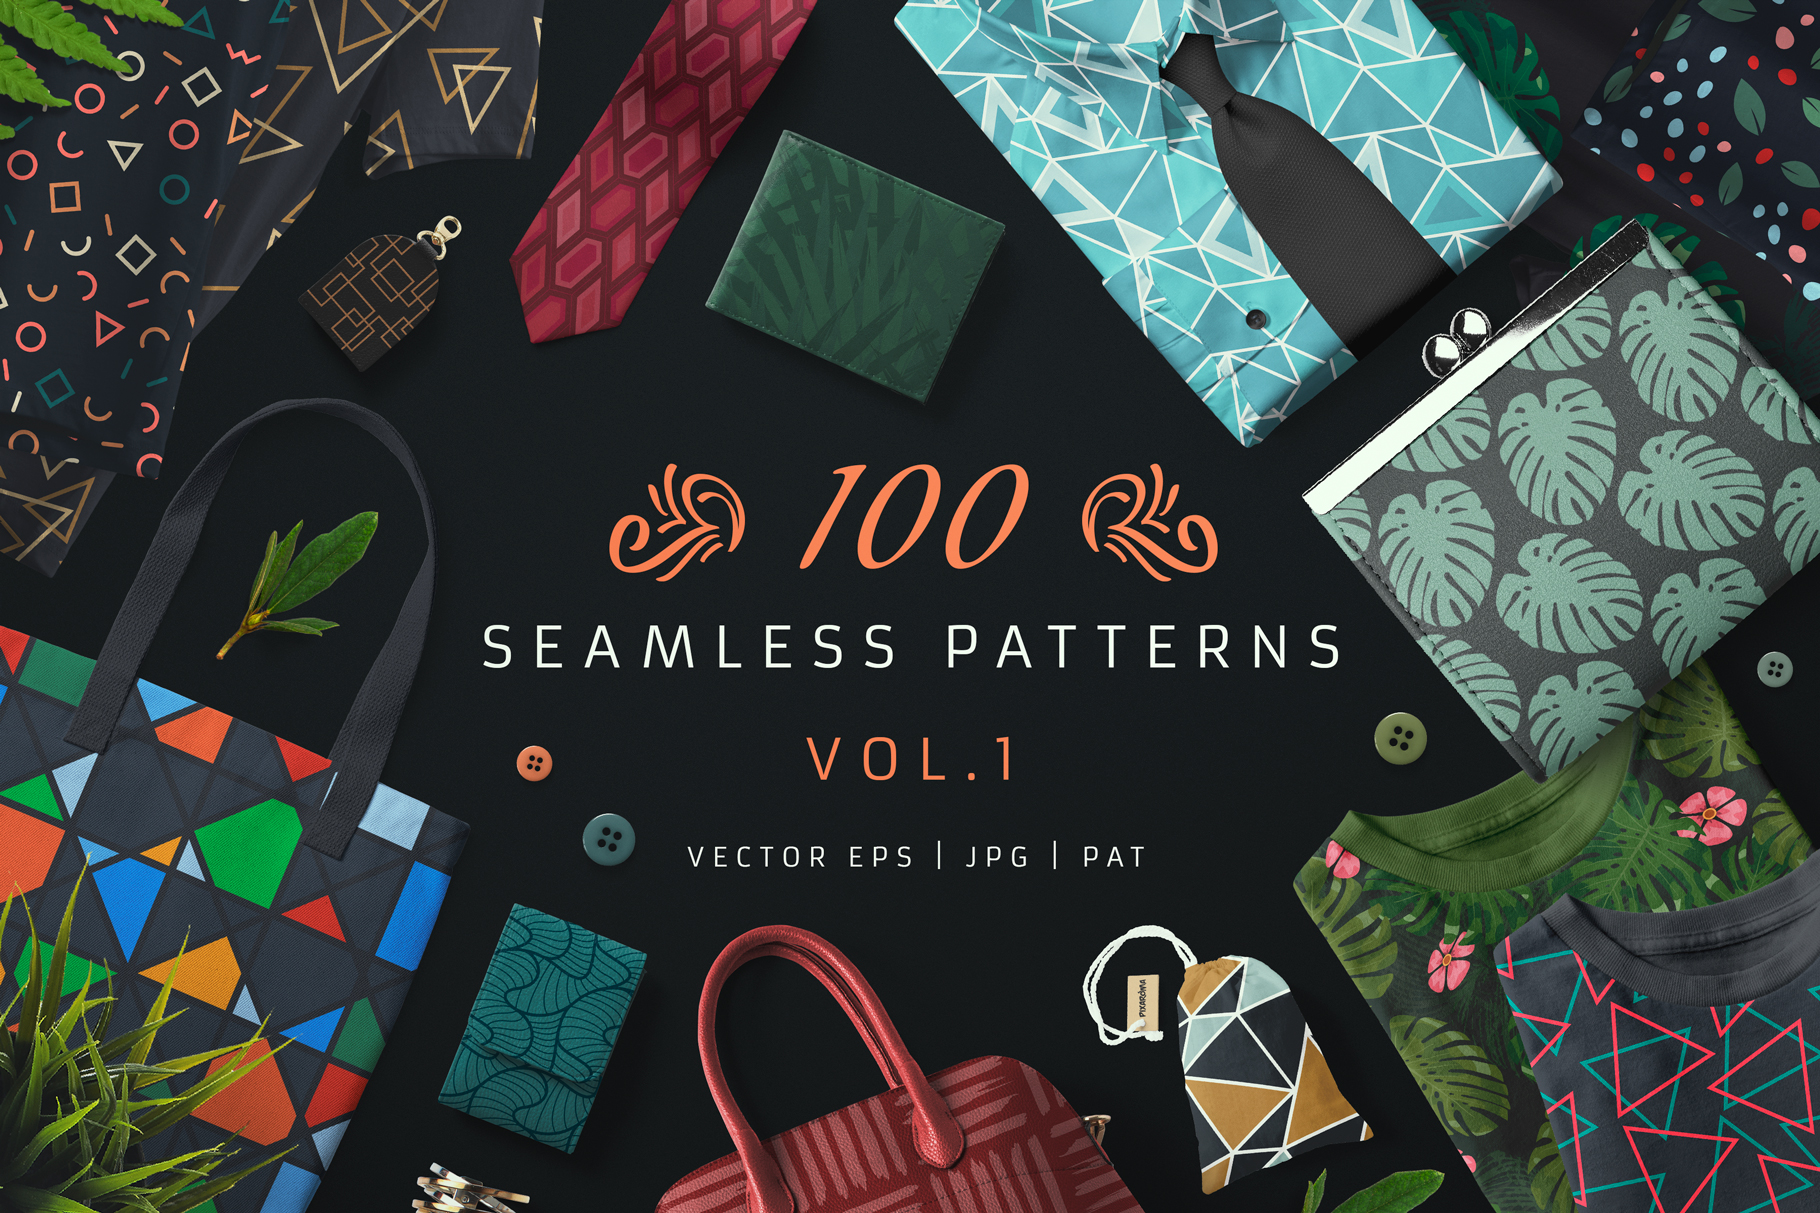 Download Free 100 Seamless Patterns Vol 1 Graphic By Pixaroma Creative Fabrica for Cricut Explore, Silhouette and other cutting machines.